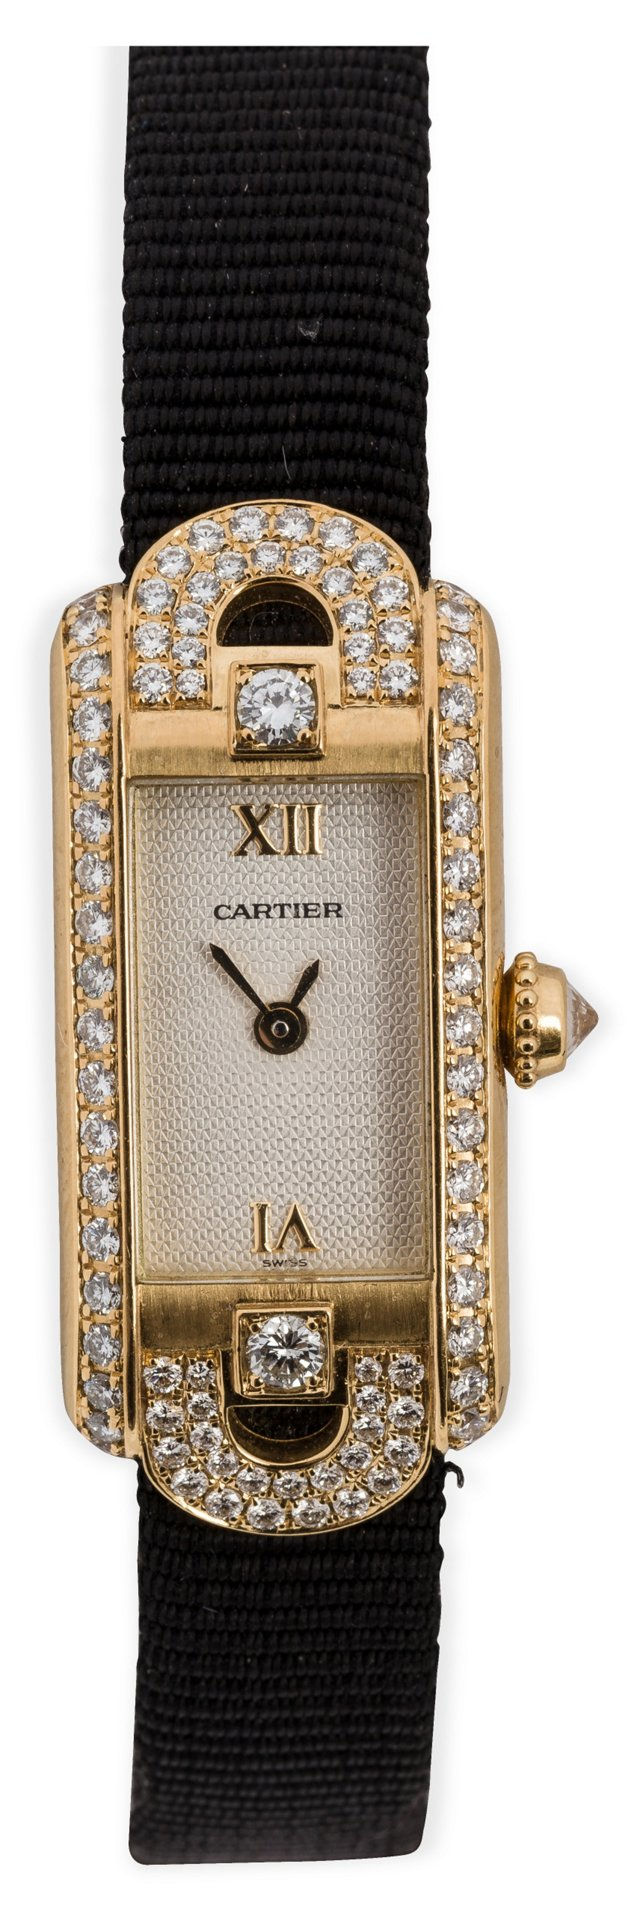 Cartier Ladies' Quartz Dress Watch